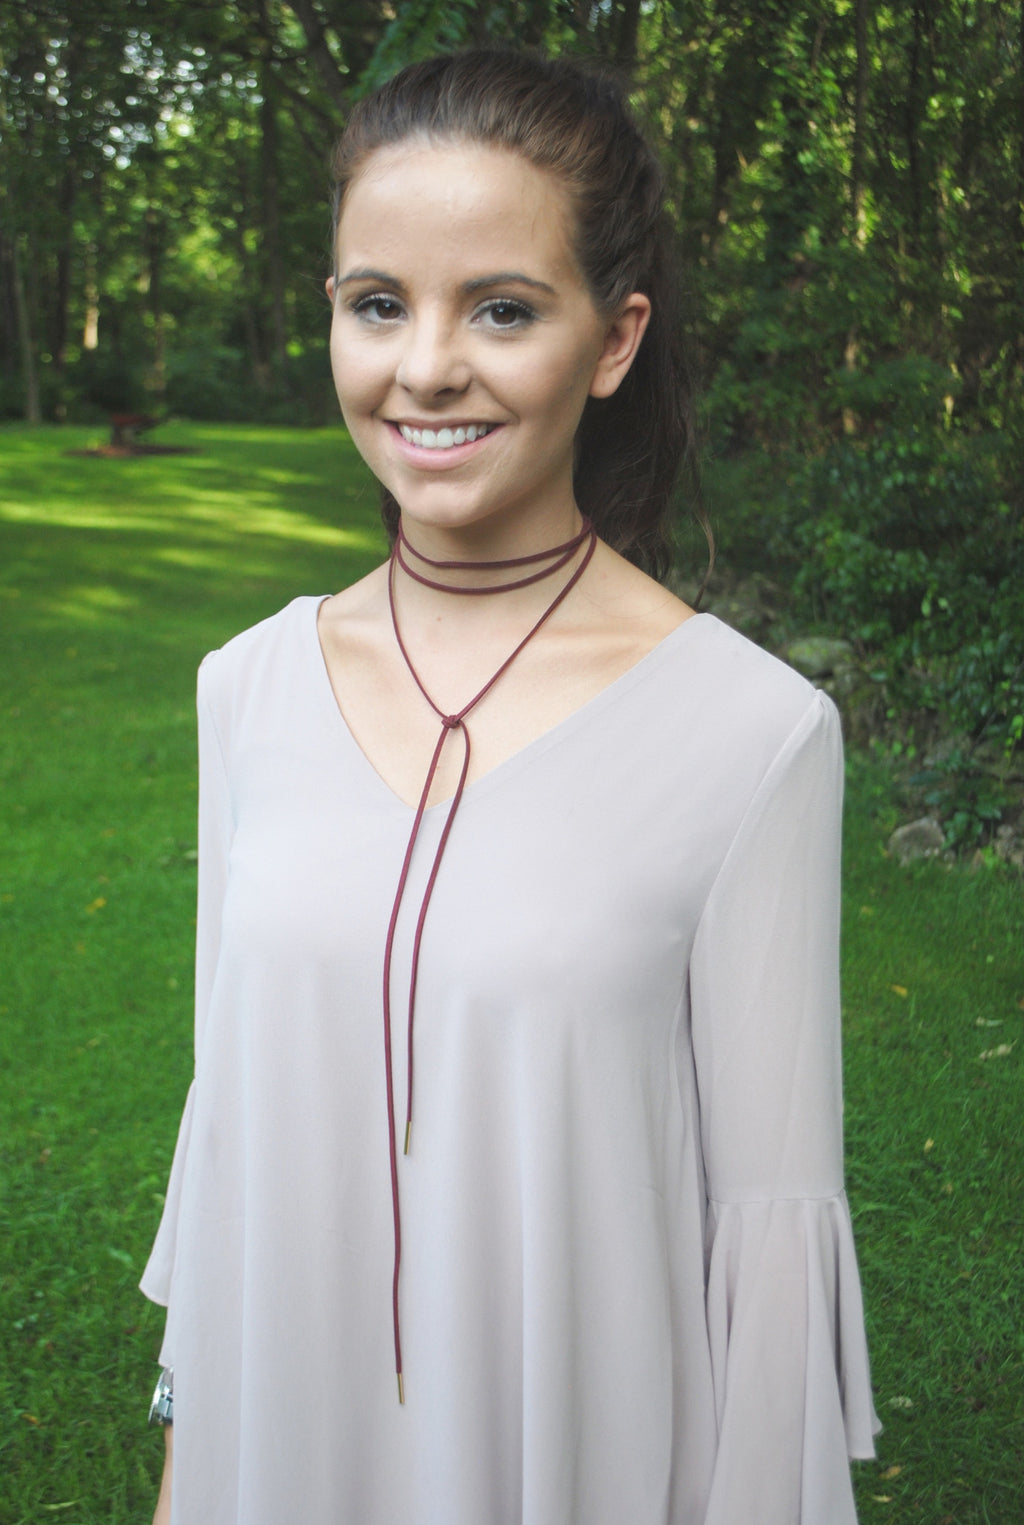 Suede Wrap Choker - Burgundy - Mint Pop Shop